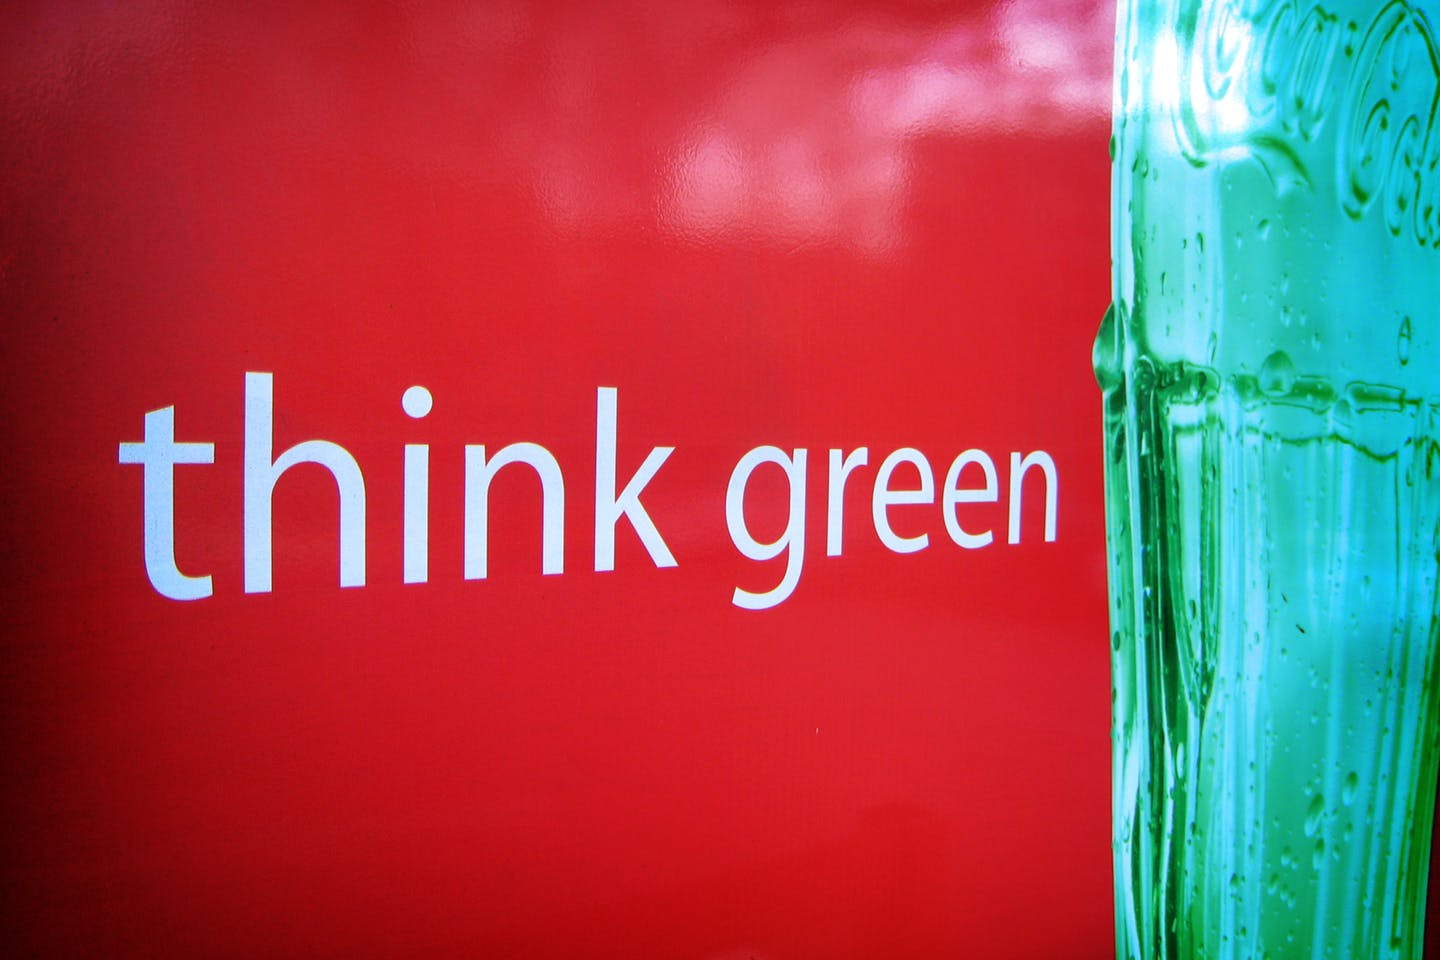 Coca-Cola wants you to think green